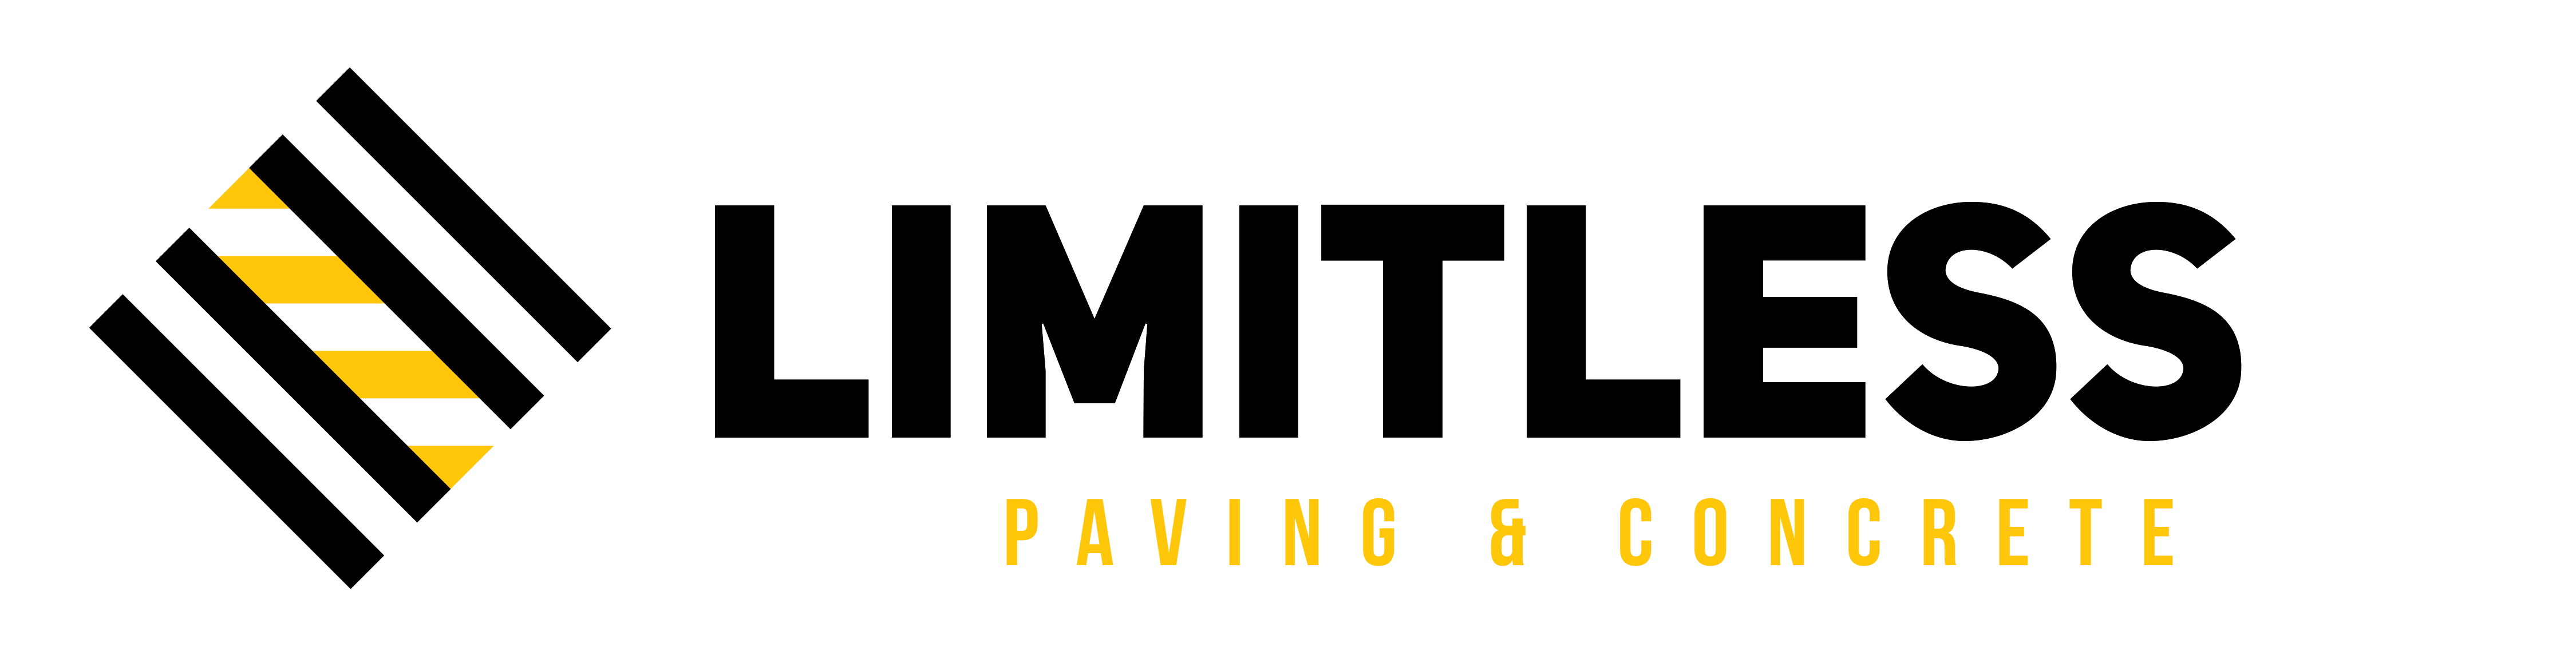 Limitless Paving & concrete logo